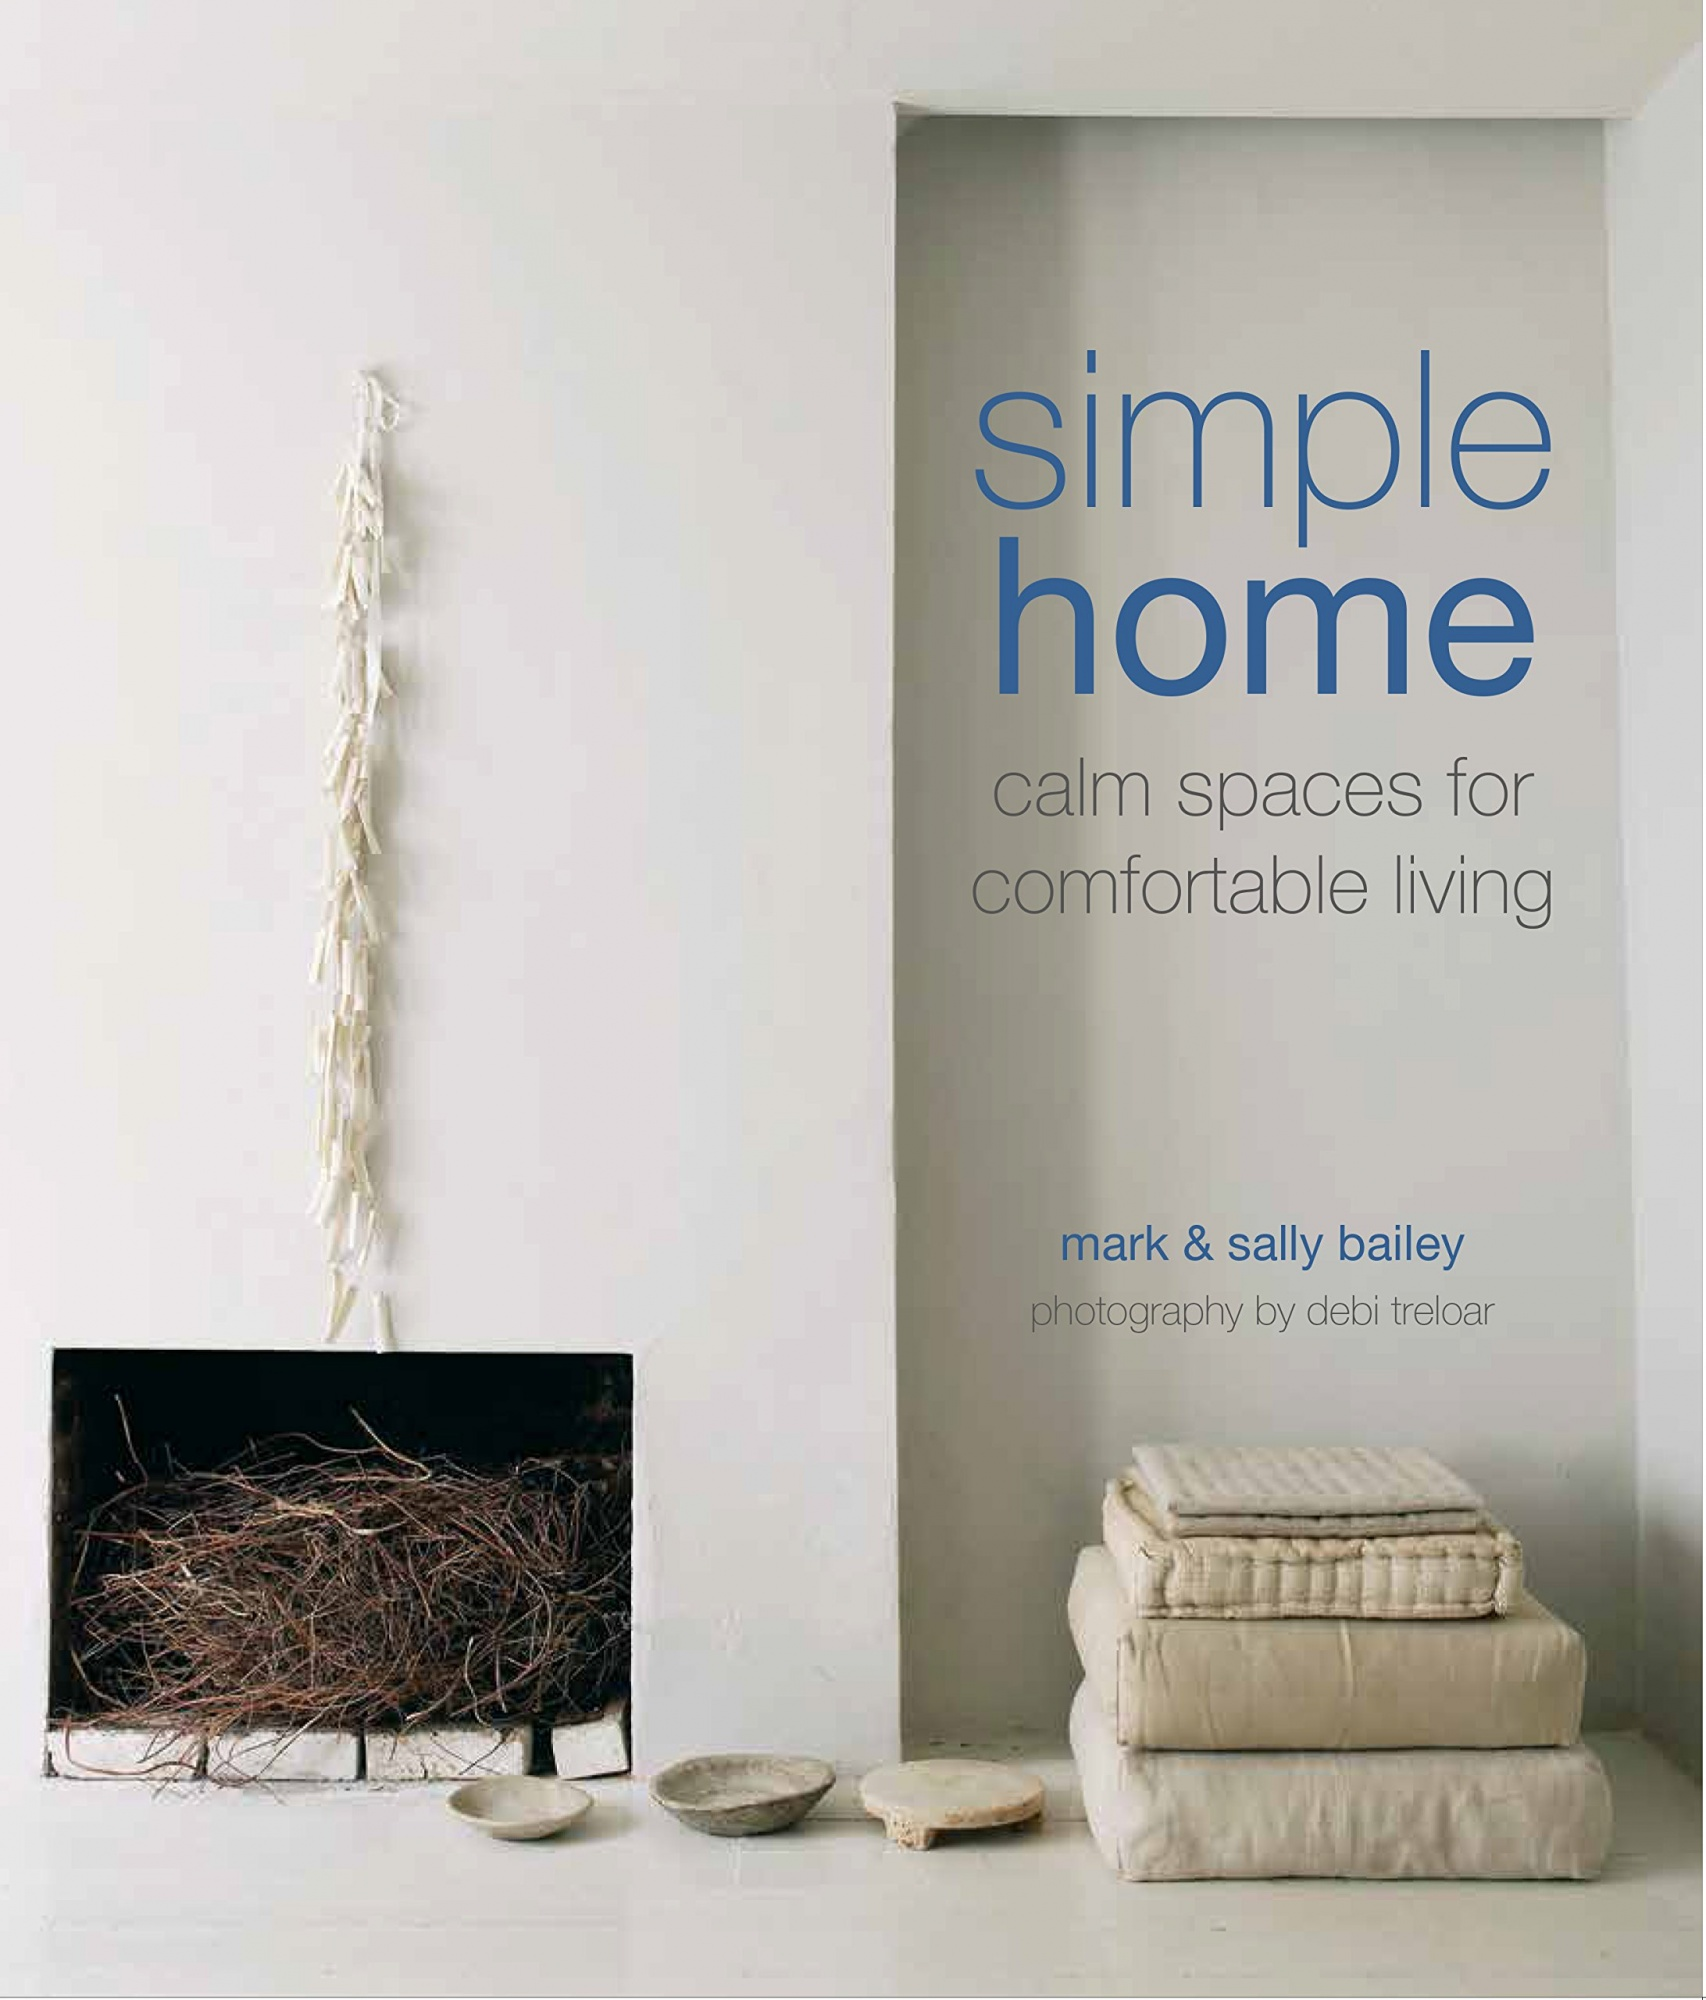 Simple Home: Calm Spaces for Comfortable Living by Mark Bailey, Sally Bailey, ISBN: 9781849758031